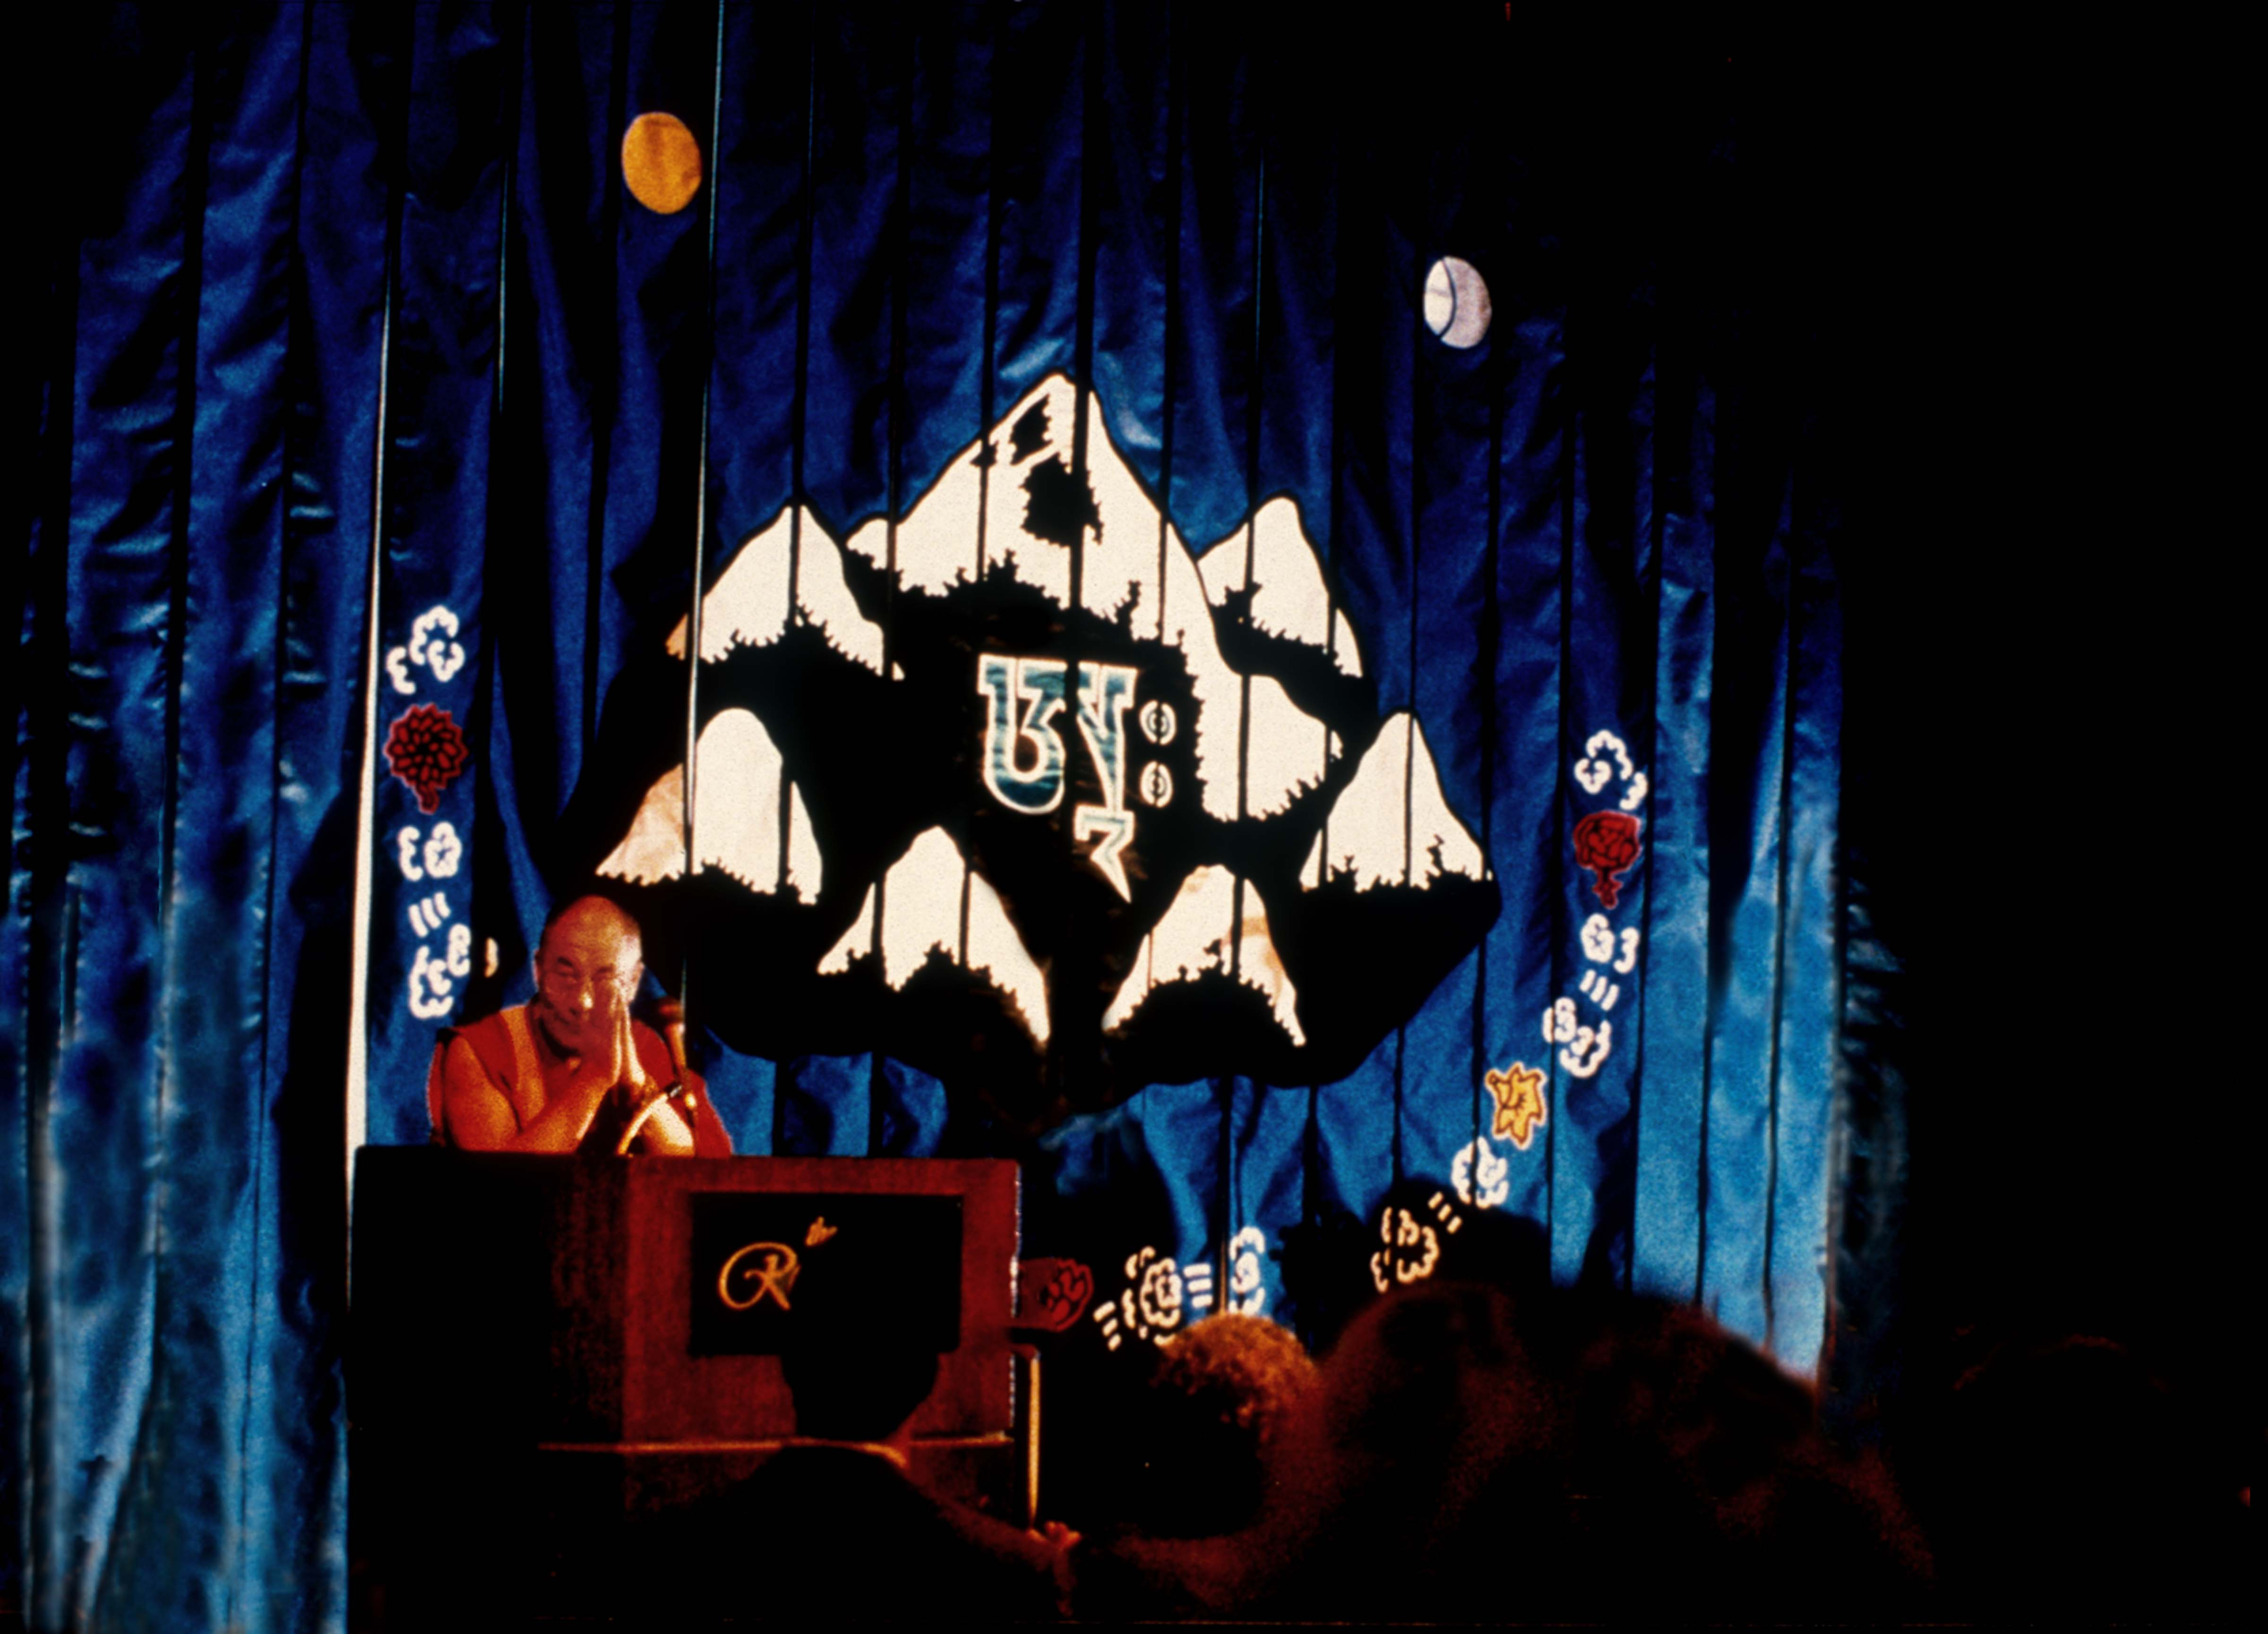 Dalai Lama Speaking in front of Seven Summits Banner